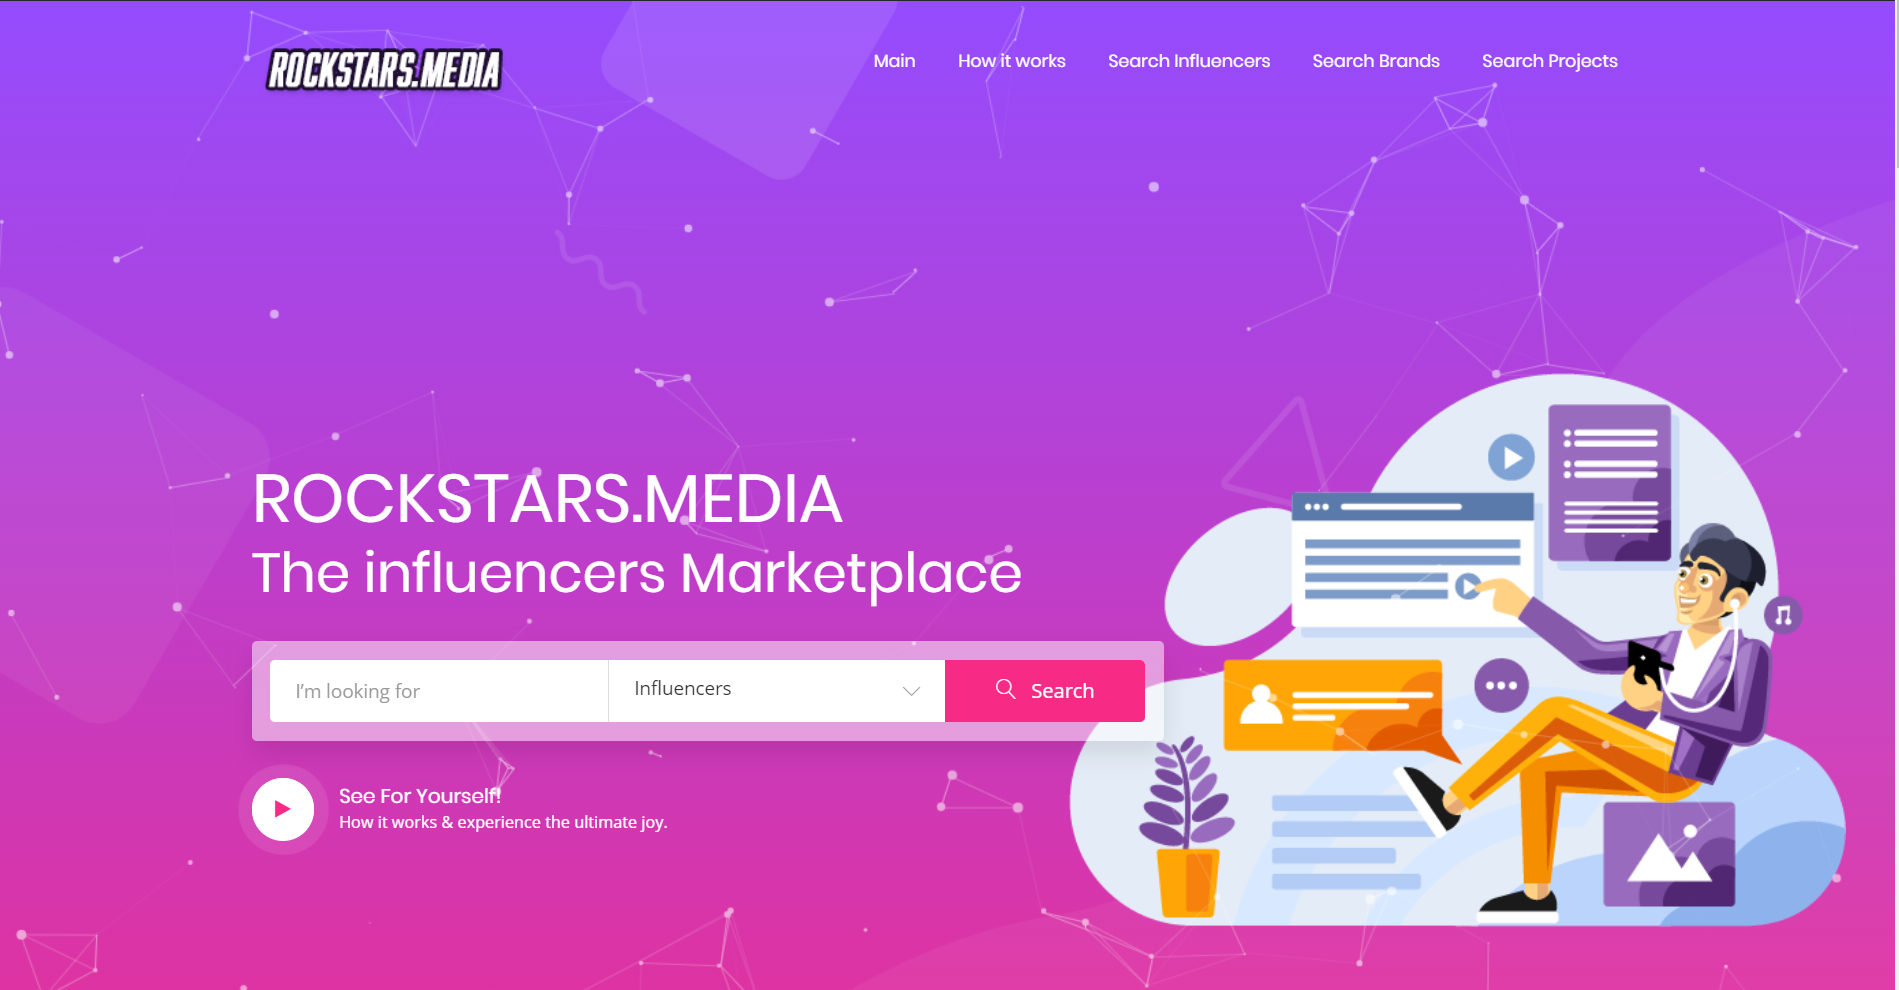 ROCKSTARS.MEDIA goes live launching influencer marketing platform and marketplace